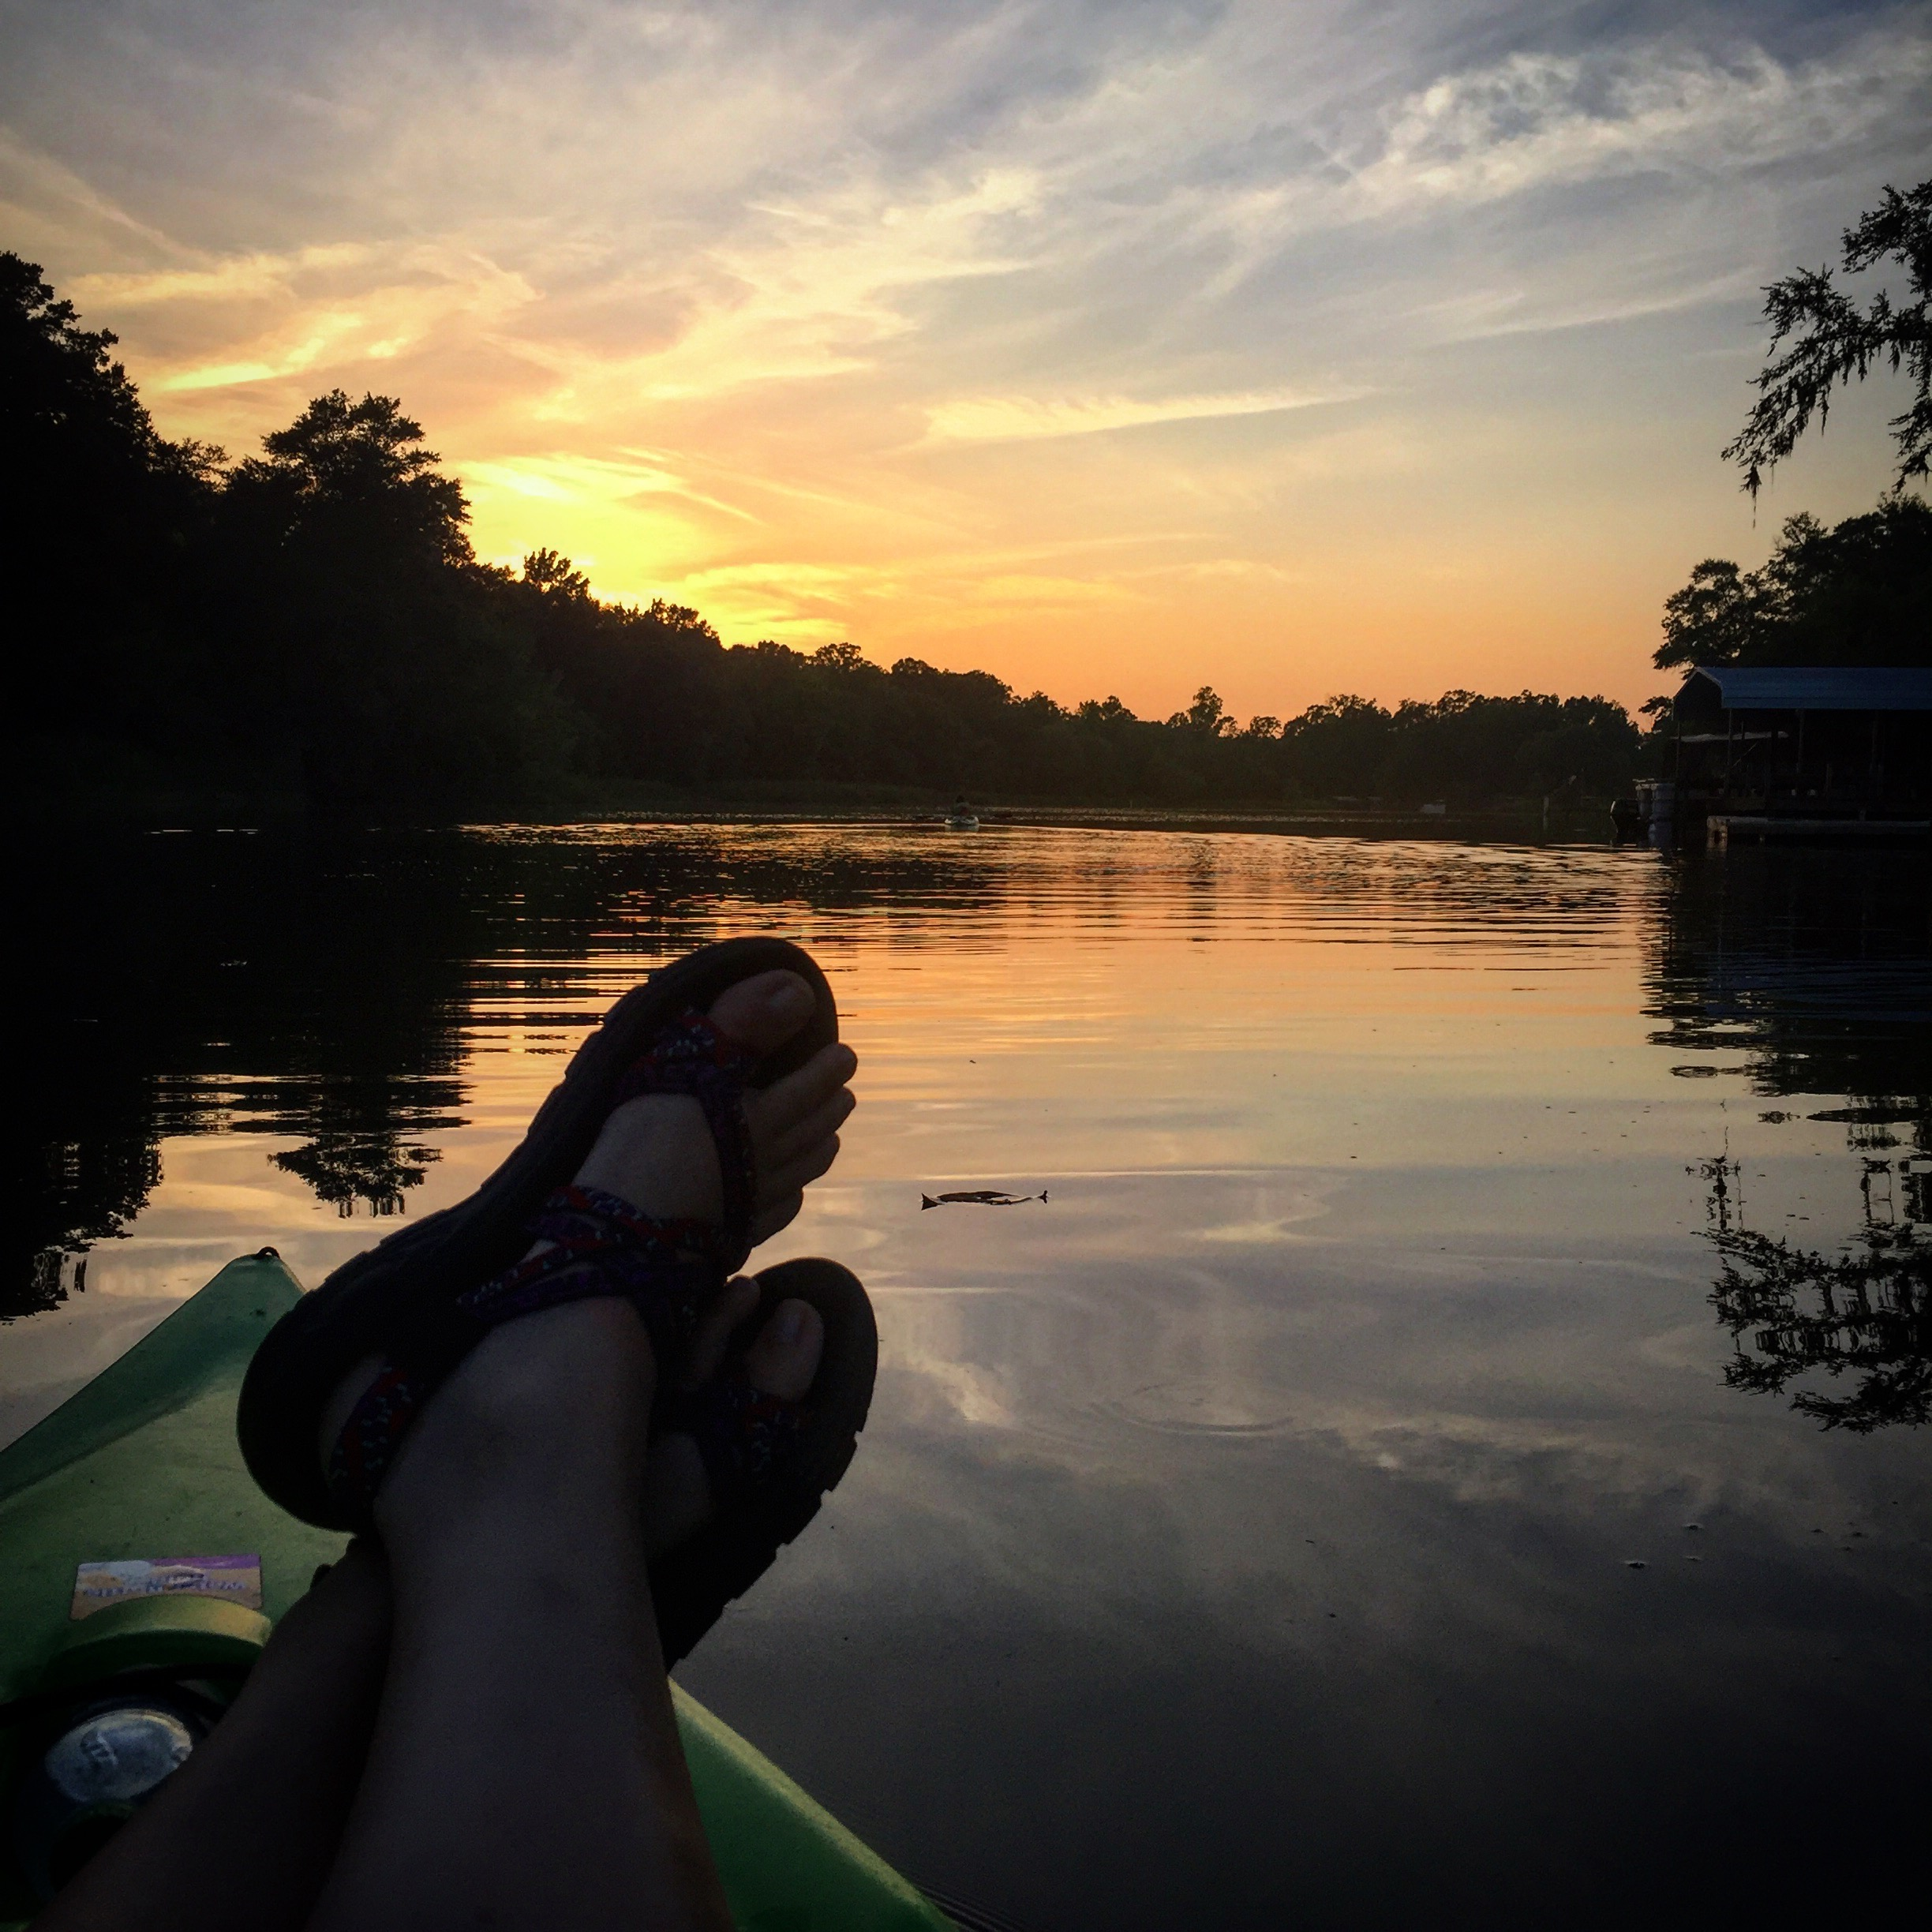 Kayaking and watching the beautiful sunset on Dog River.